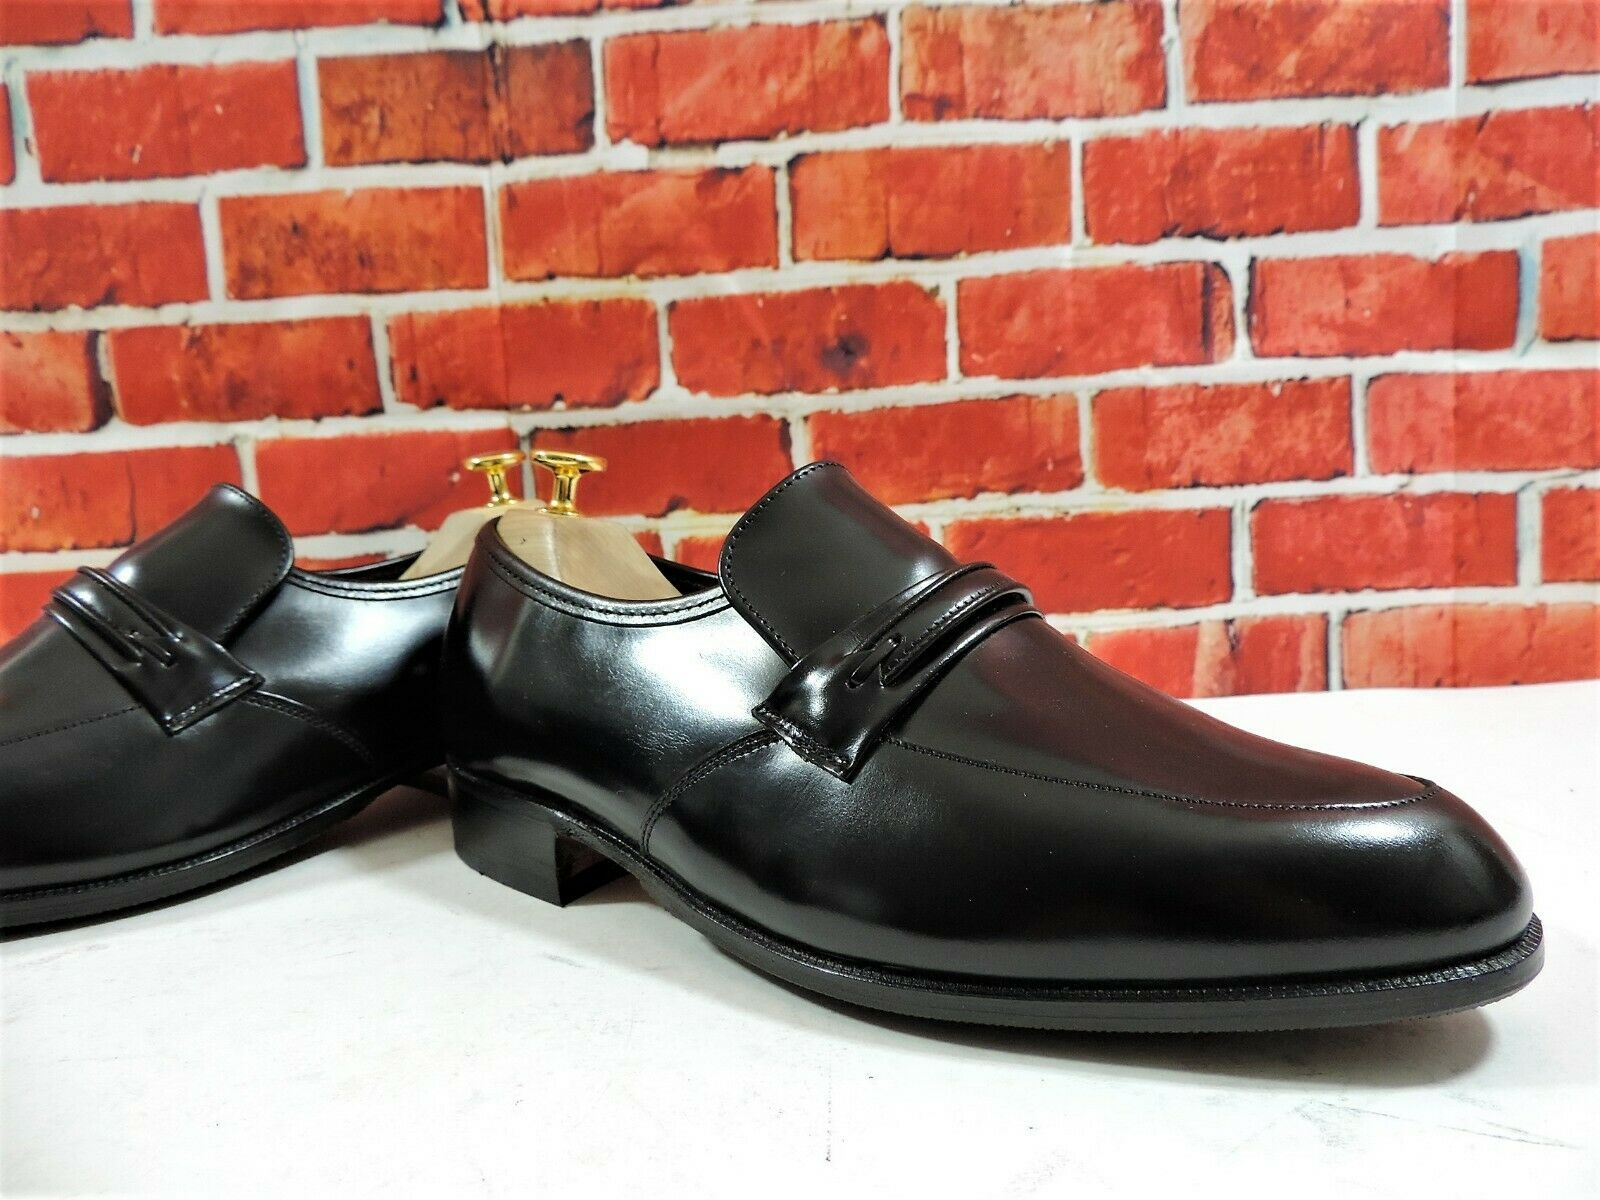 New Church's Cheaney UK UK Made Penny Loafers UK Cheaney 6.5 F US 7.5 EU 40.5 Harley 8e5400